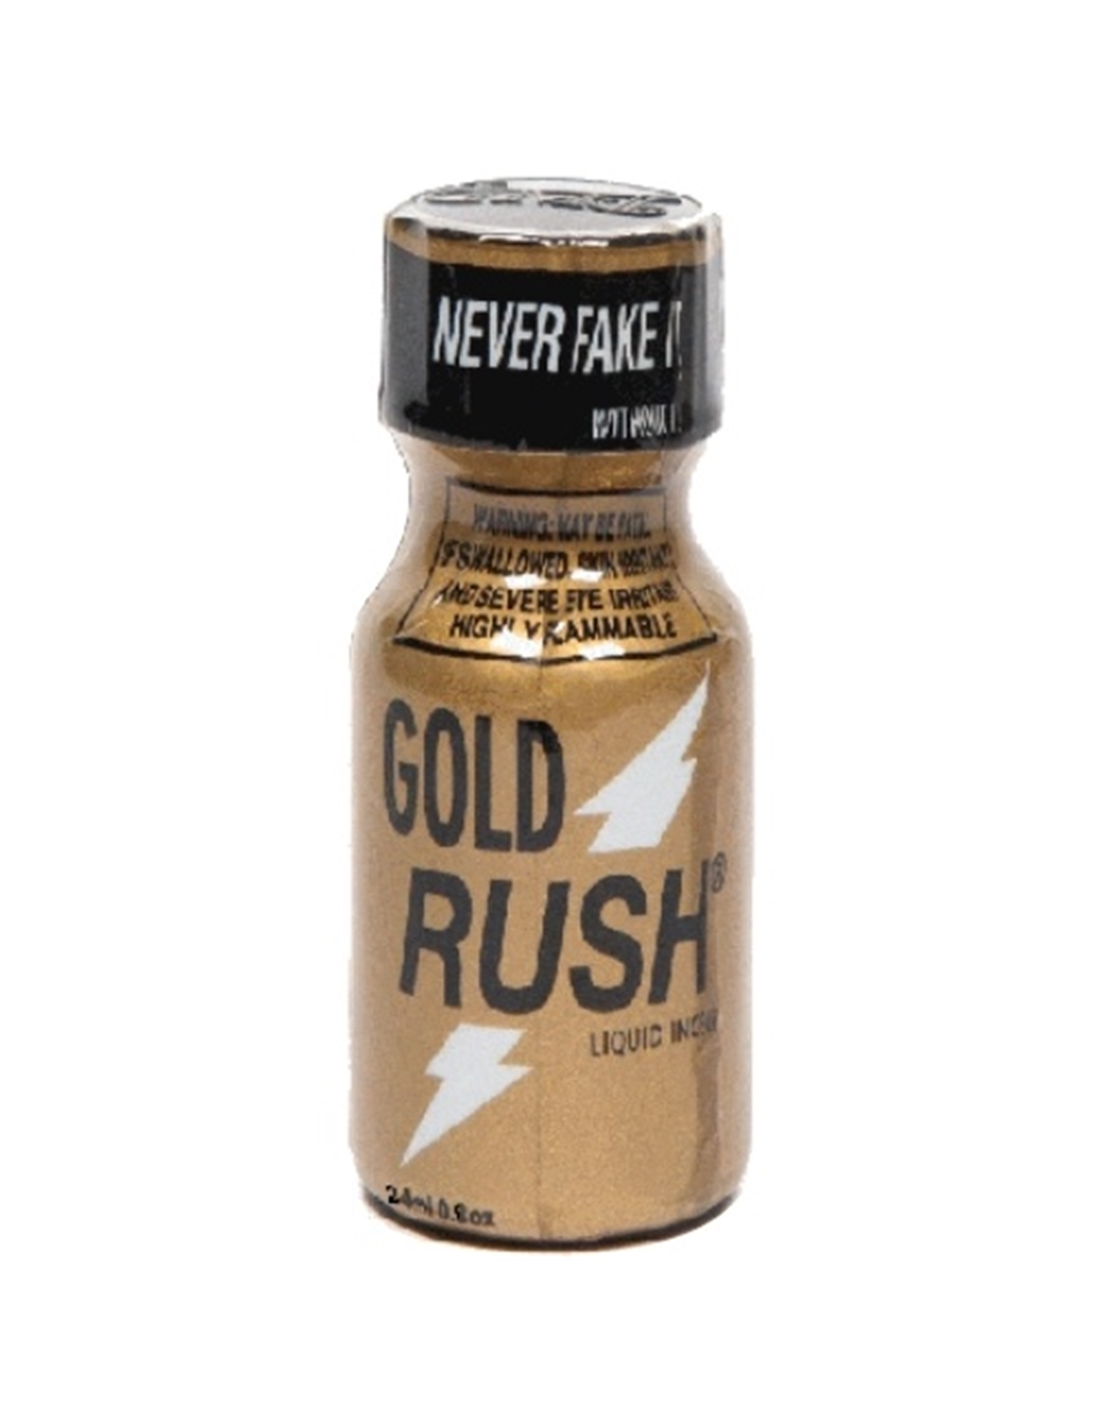 Gold Rush 24ml - PR2010319736